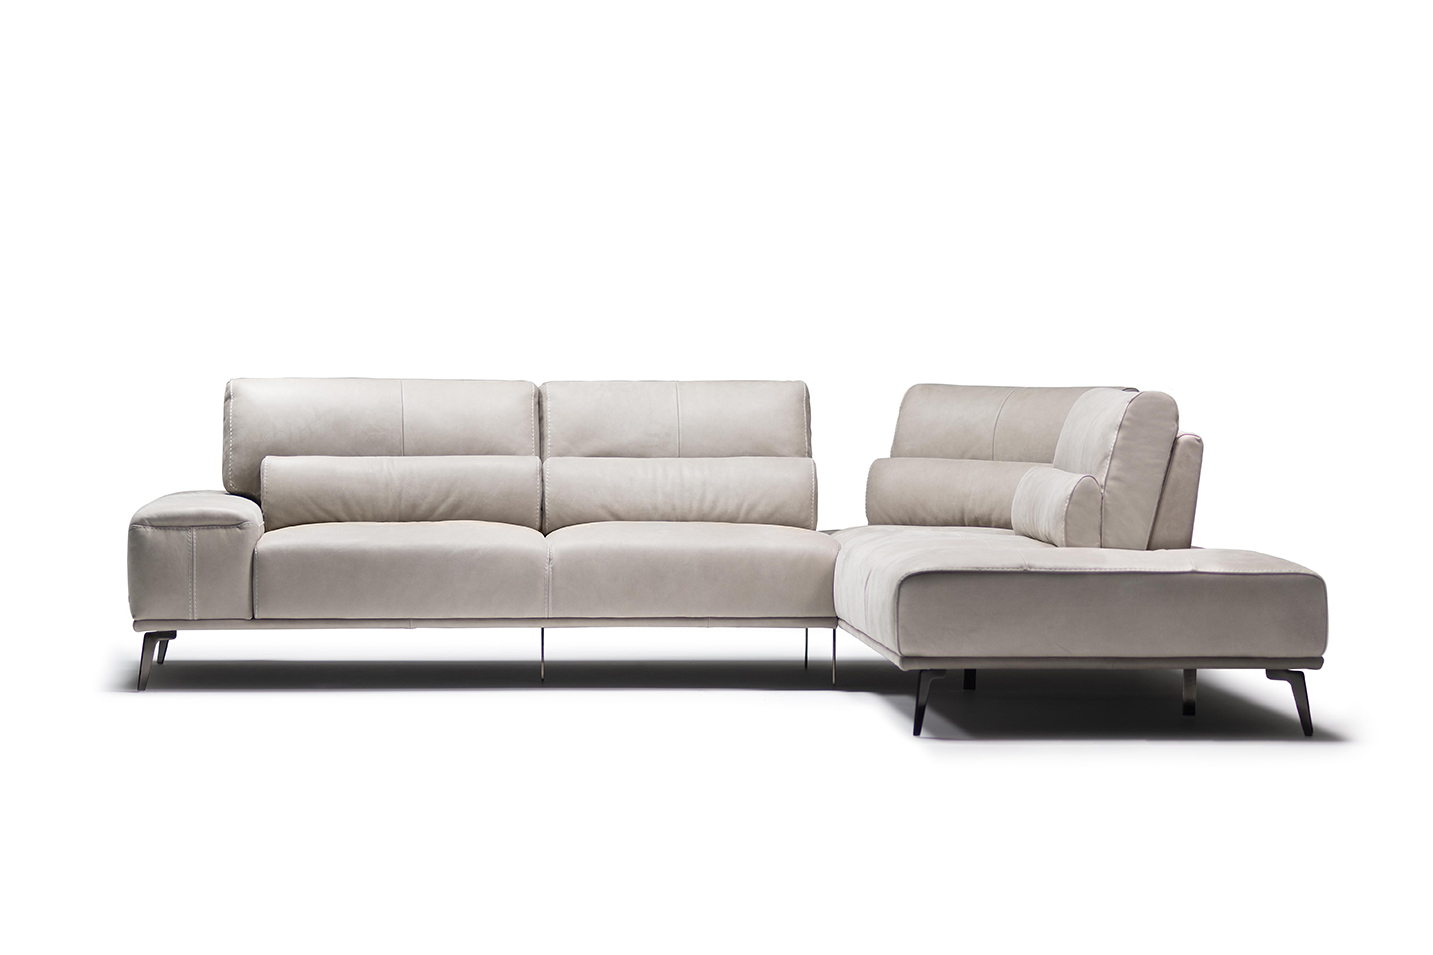 F.O.R.M. | DellaRobbia & Bontempi Furniture | San Francisco ... on pillow sofa, storage sofa, lounge sofa, recliner sofa, bedroom sofa, ottoman sofa, bench sofa, beds sofa, art sofa, bookcase sofa, cushions sofa, futon sofa, mattress sofa, table sofa, glider sofa, settee sofa, divan sofa, couch sofa, fabric sofa, chair sofa,